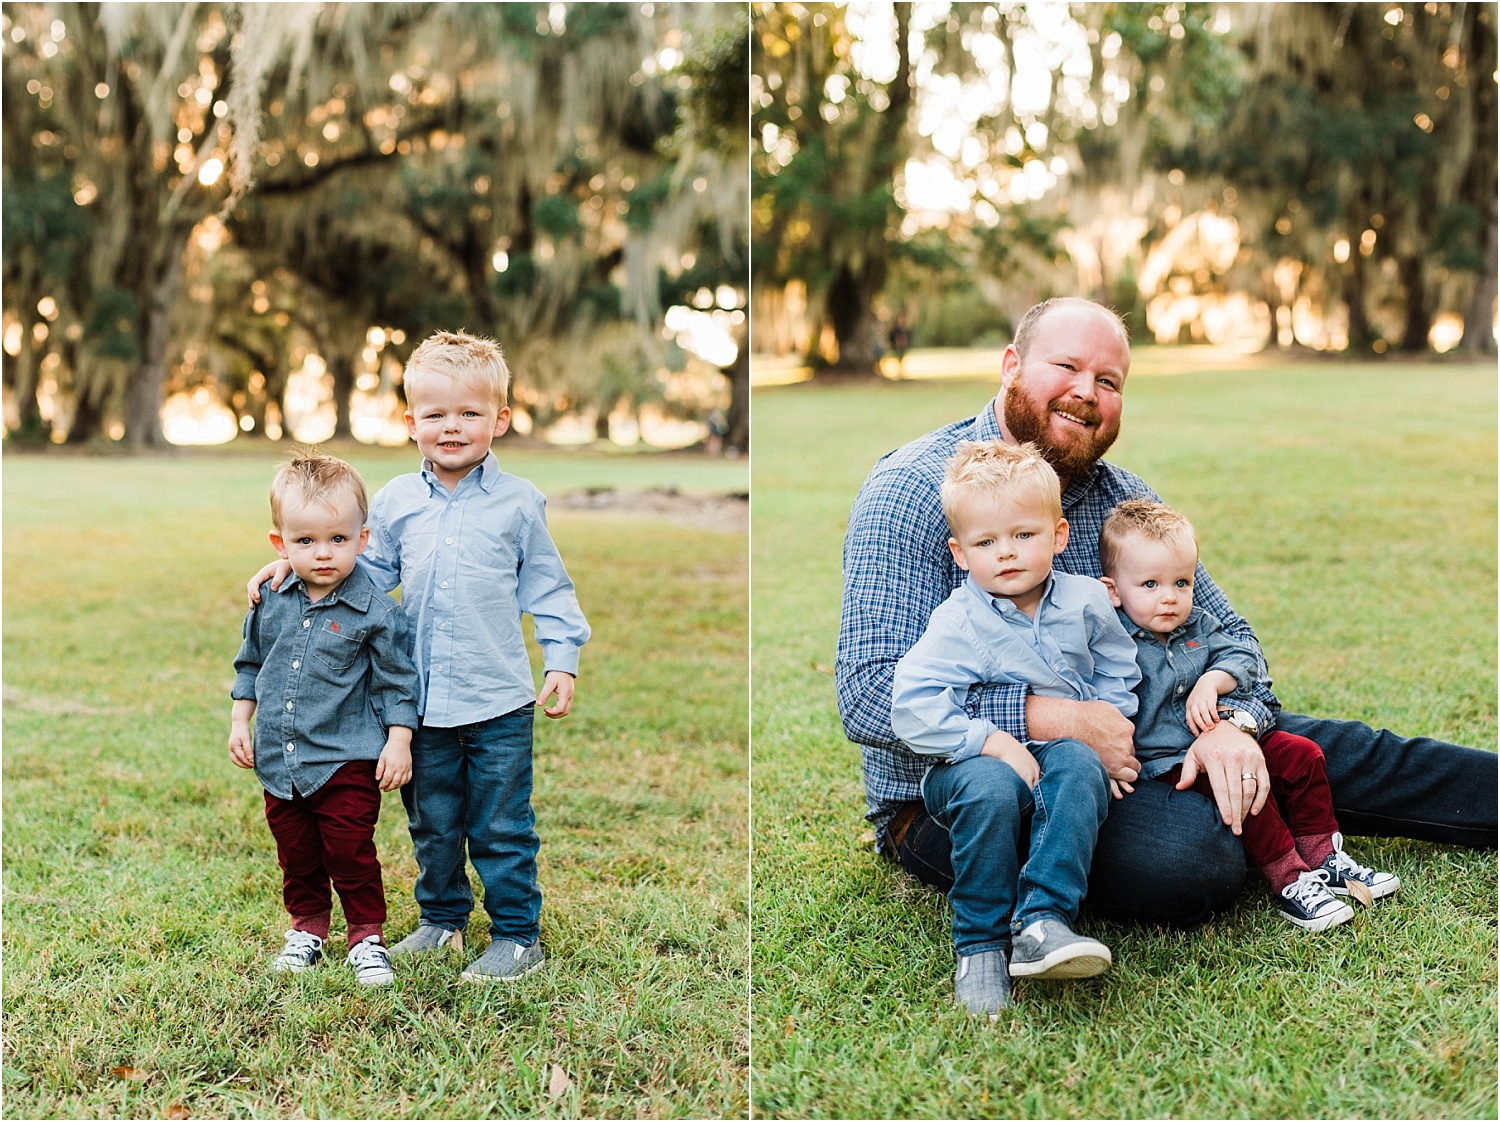 Smalley Family Fall 2019-Fountainbleau-State-Park-Family-Photos_Gabby Chapin Photography_0016_BLOG.jpg